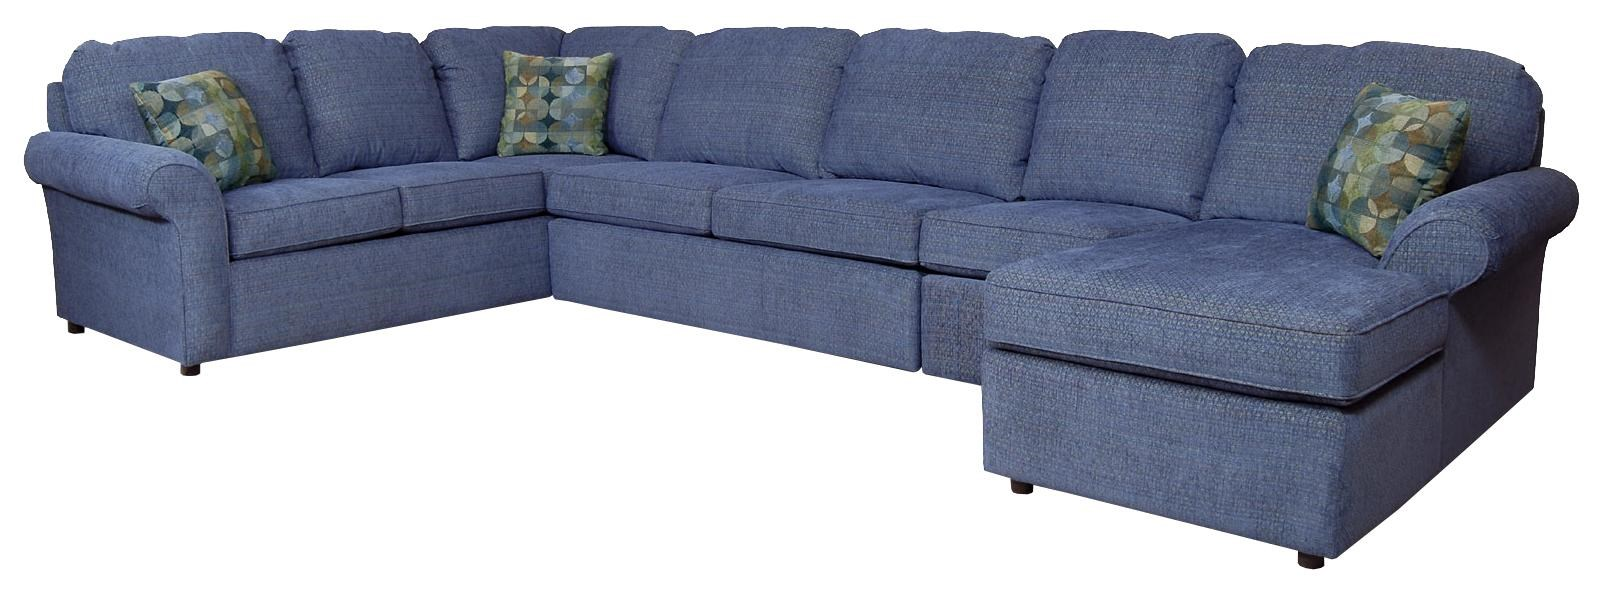 england sofas reviews western sectionals sectional sofa thomas with